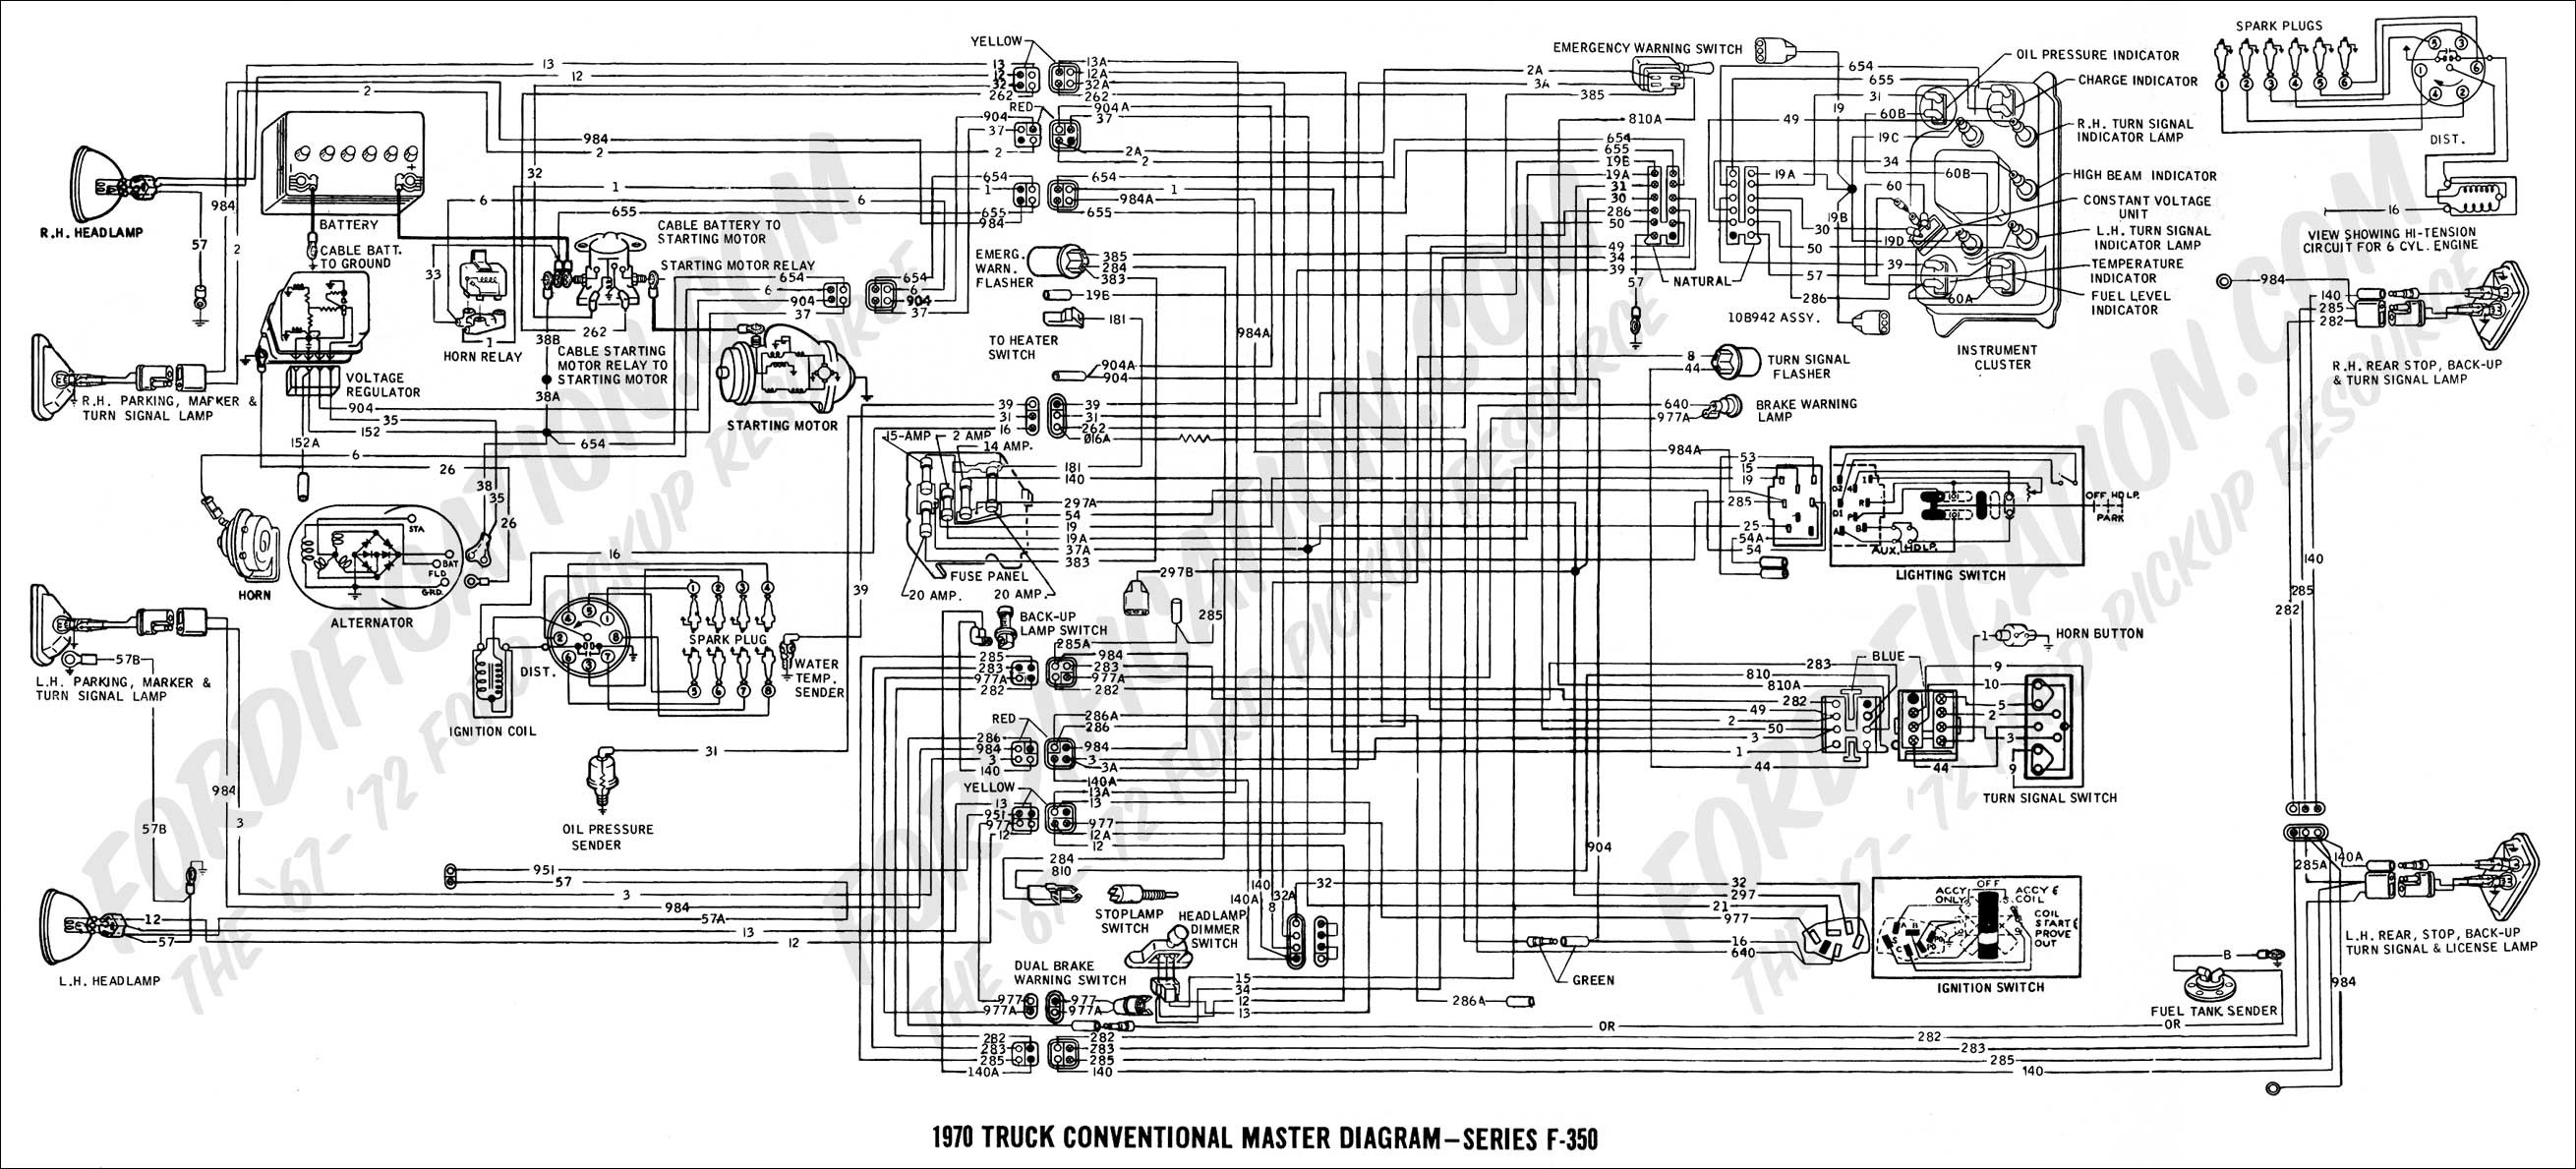 Ford 4r100 Wiring Diagram Library Subaru Impreza Parts Ranger As Well F 350 In Addition Headlight